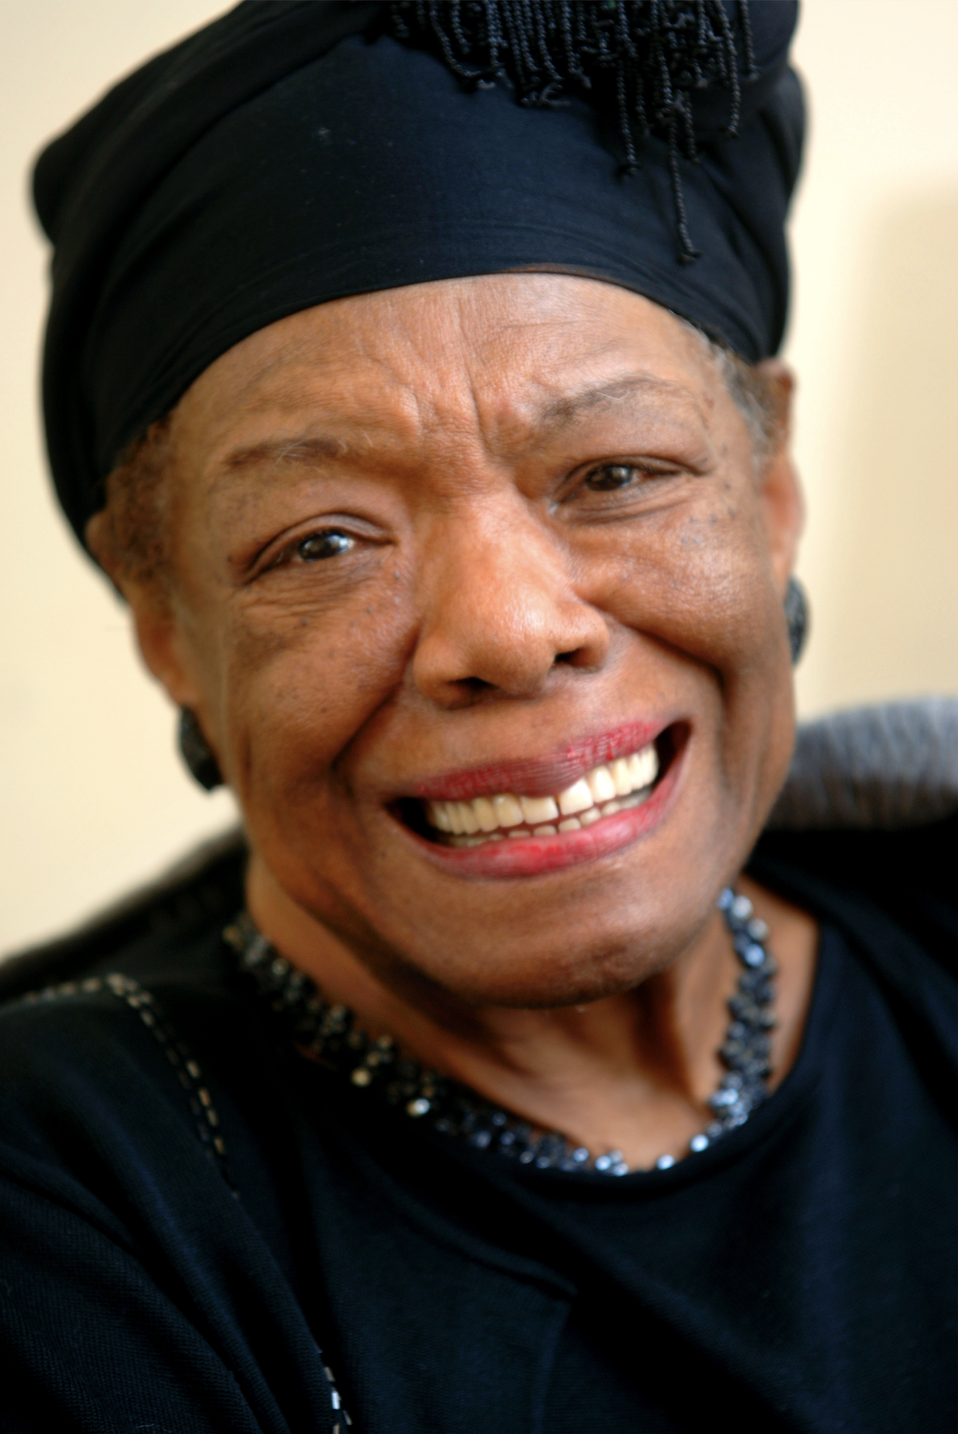 MAYA ANGELOU, 2005. From page 186. COURTESY: SHERRATT, ADRIAN © ALAMY STOCK PHOTO. From the book: Legendary Authors and The Clothes They Wore by  Terry Newman . Text © 2017 by  Terry Newman . Reprinted courtesy of Harper Design, an imprint of HarperCollins Publishers. Disclaimer: this image is only to be used in the context of promoting/marketing  Legendary Authors and the Clothes They Wore and cannot be used for any other purpose.